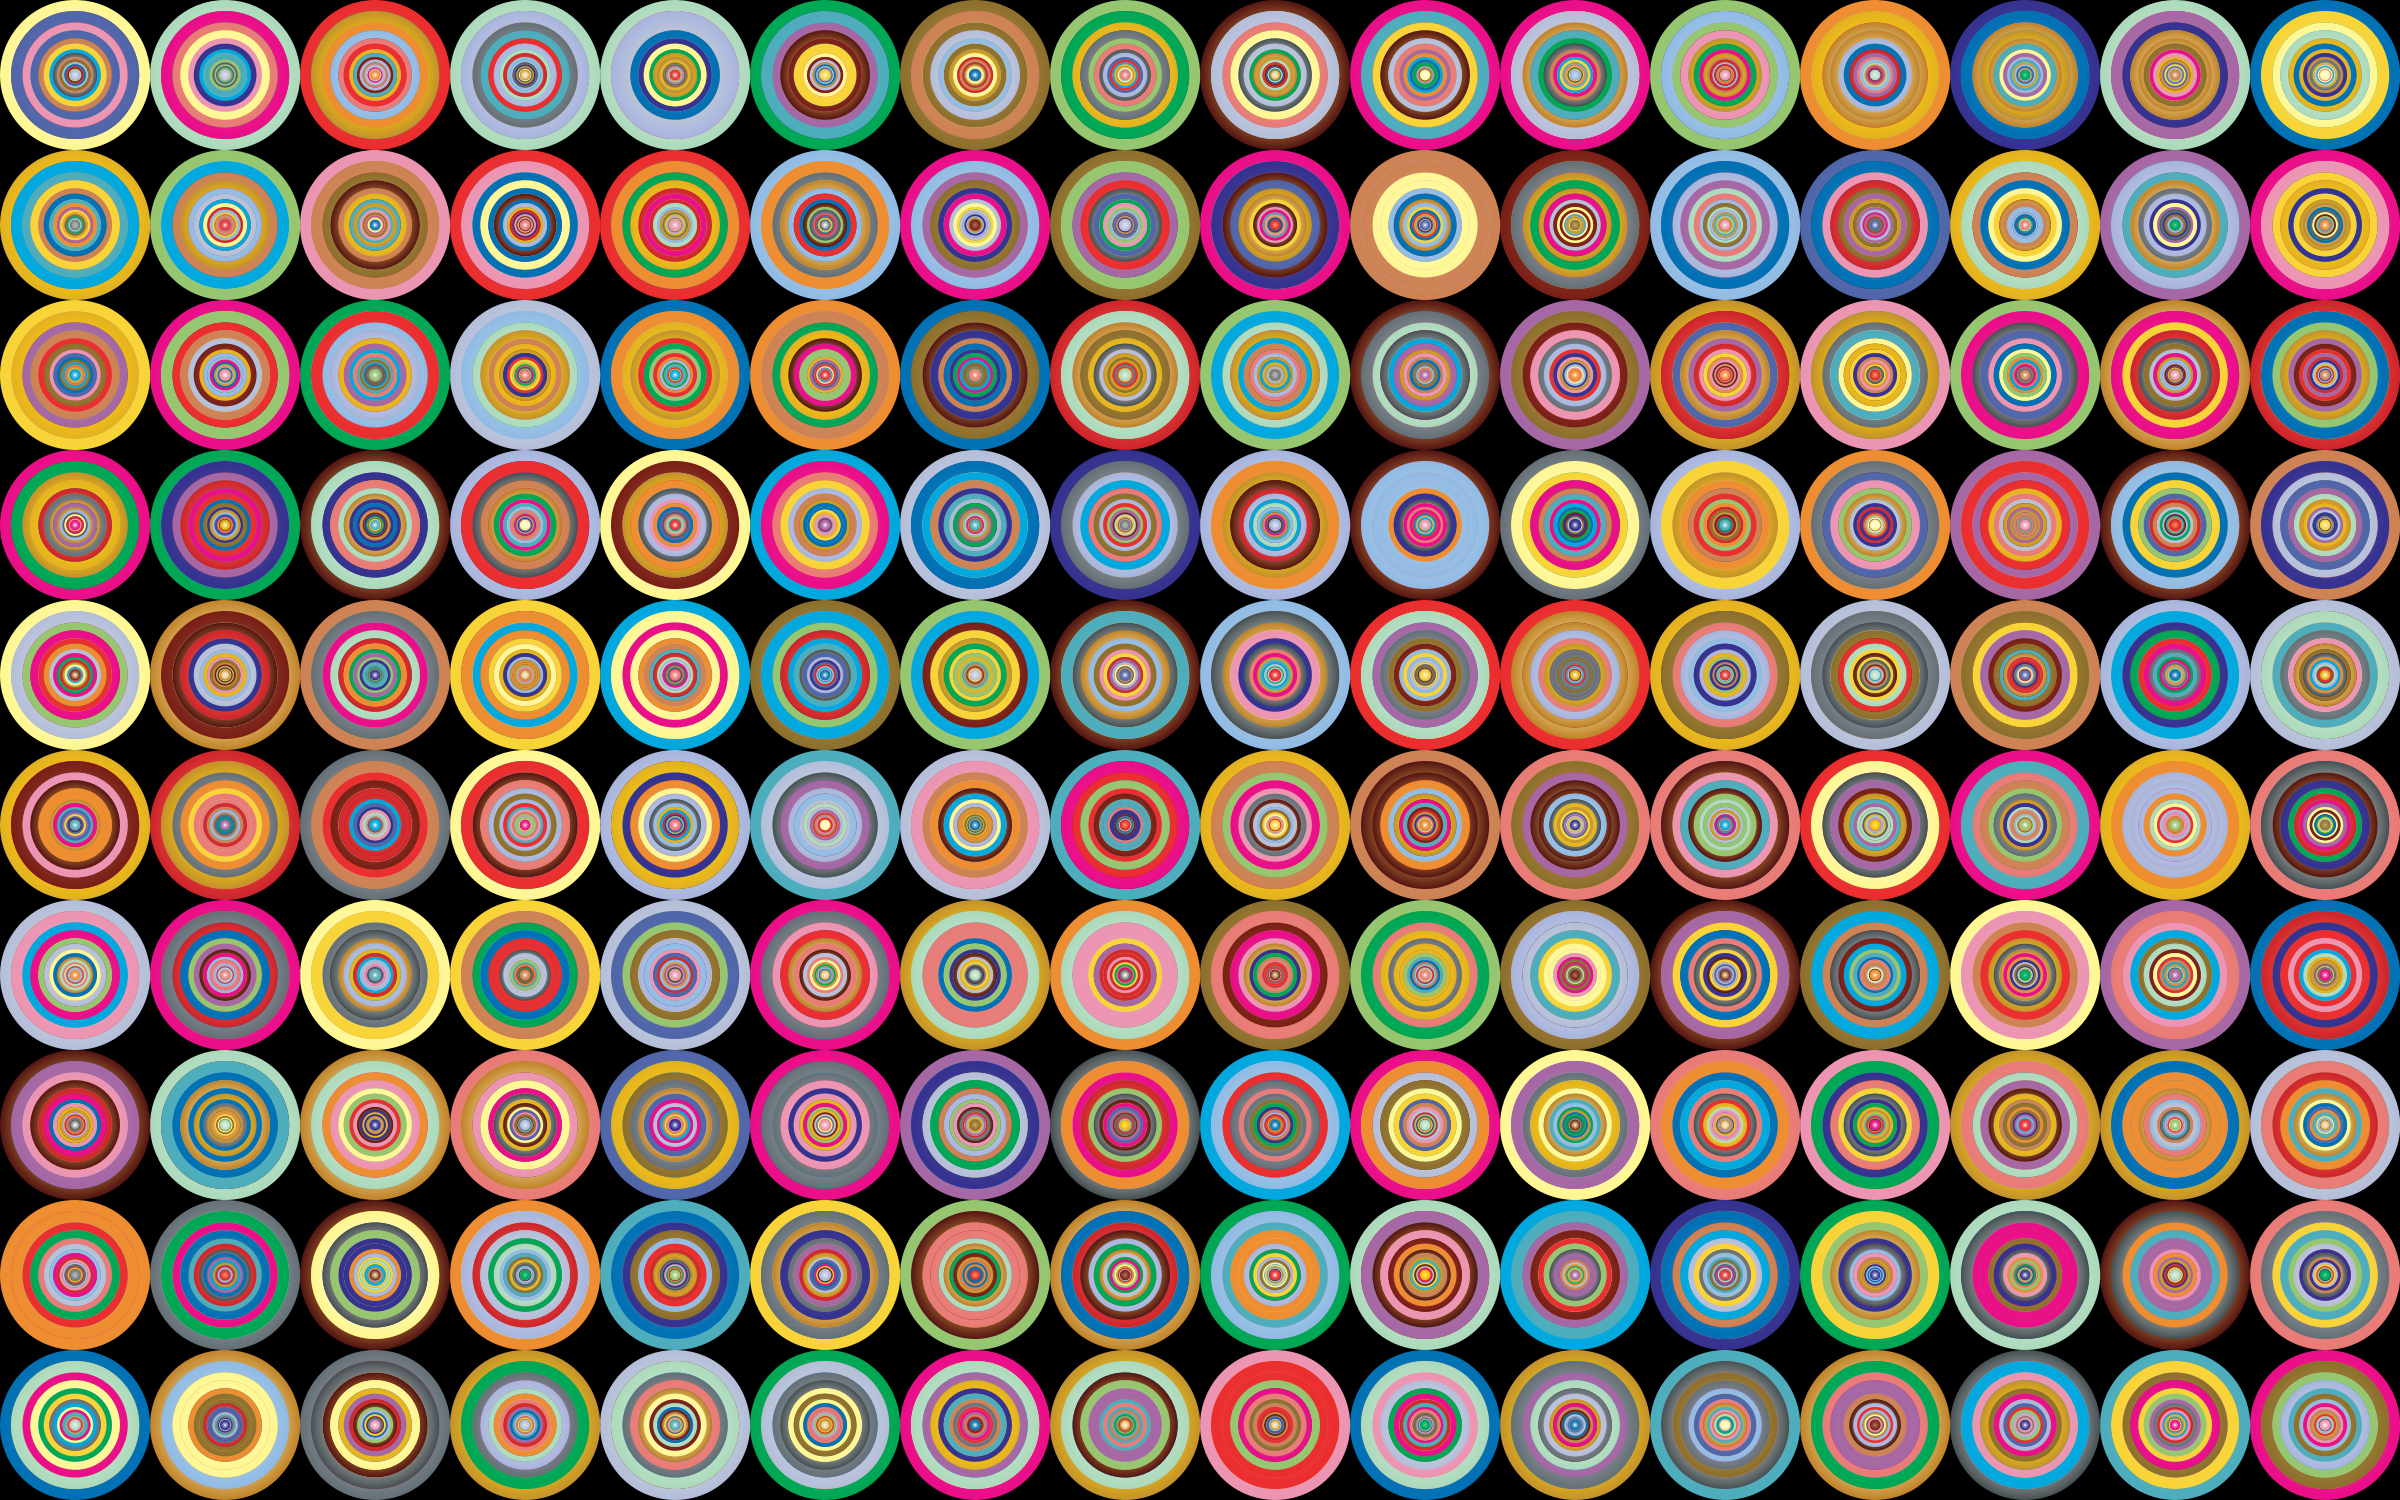 Prismatic Groovy Concentric Background 2 by GDJ